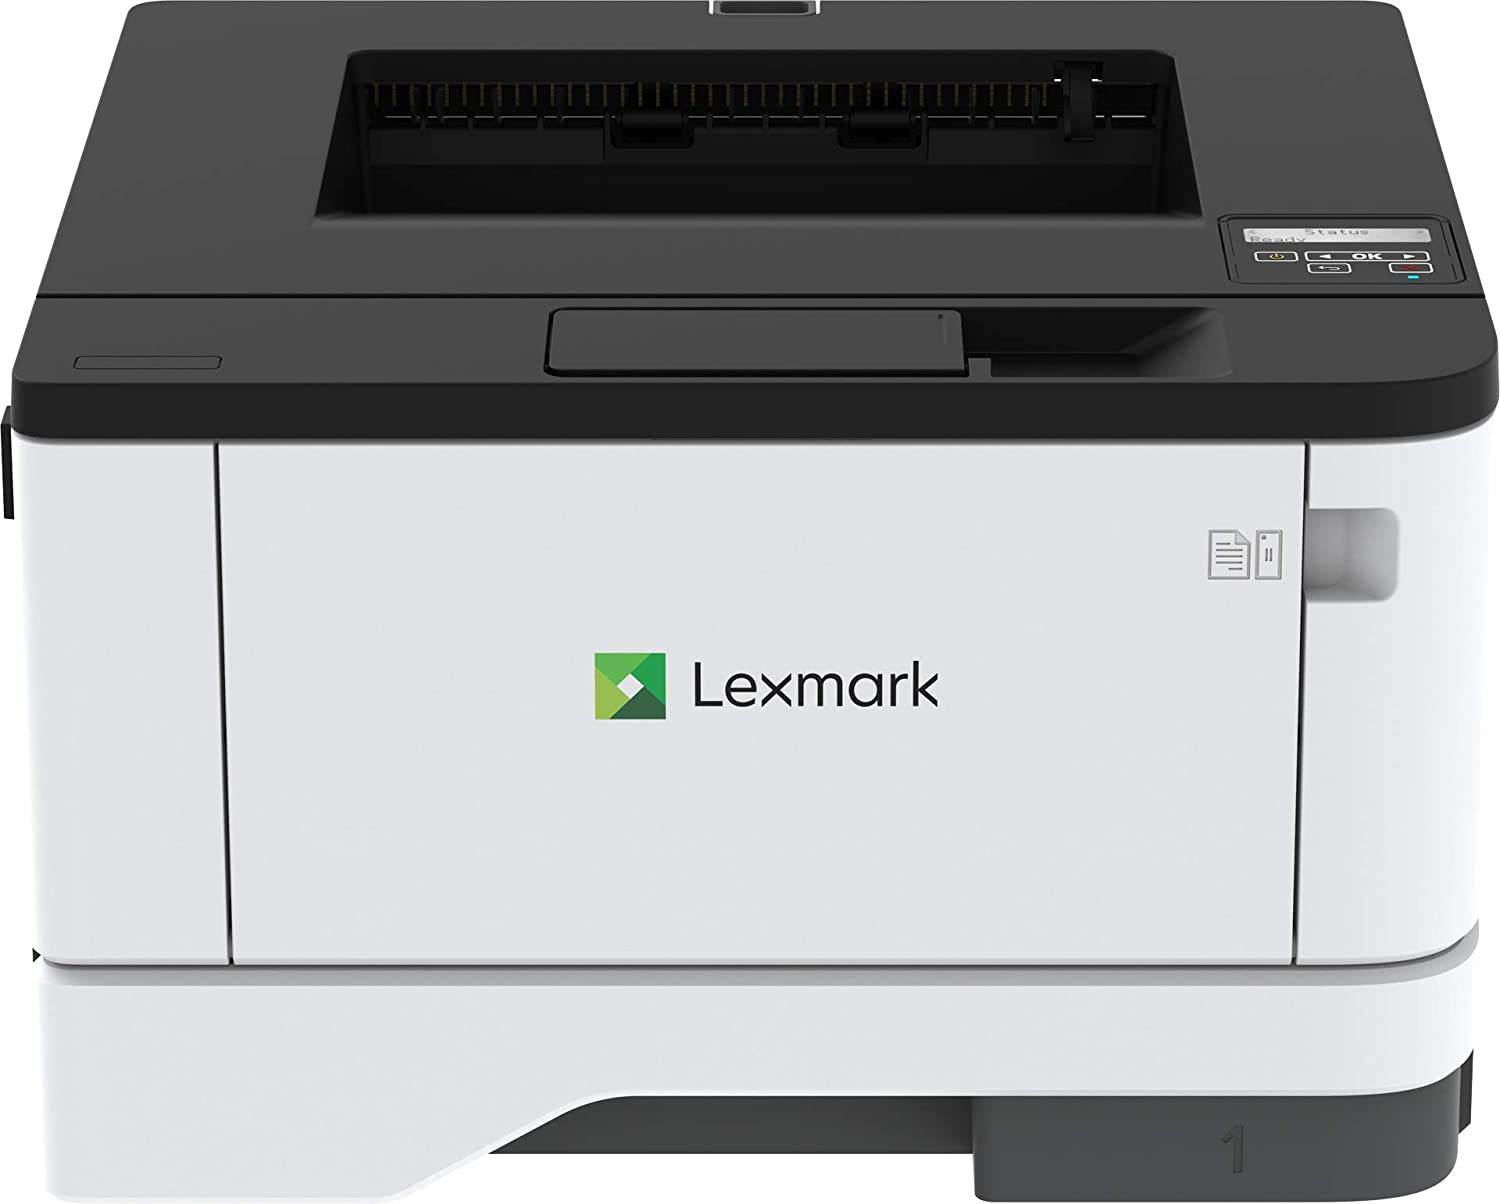 Lexmark B3340dw Monochrome Laser Printer with Full-Spectrum Security and Print Speed up to 40 ppm(29S0250), Gray/White, Small